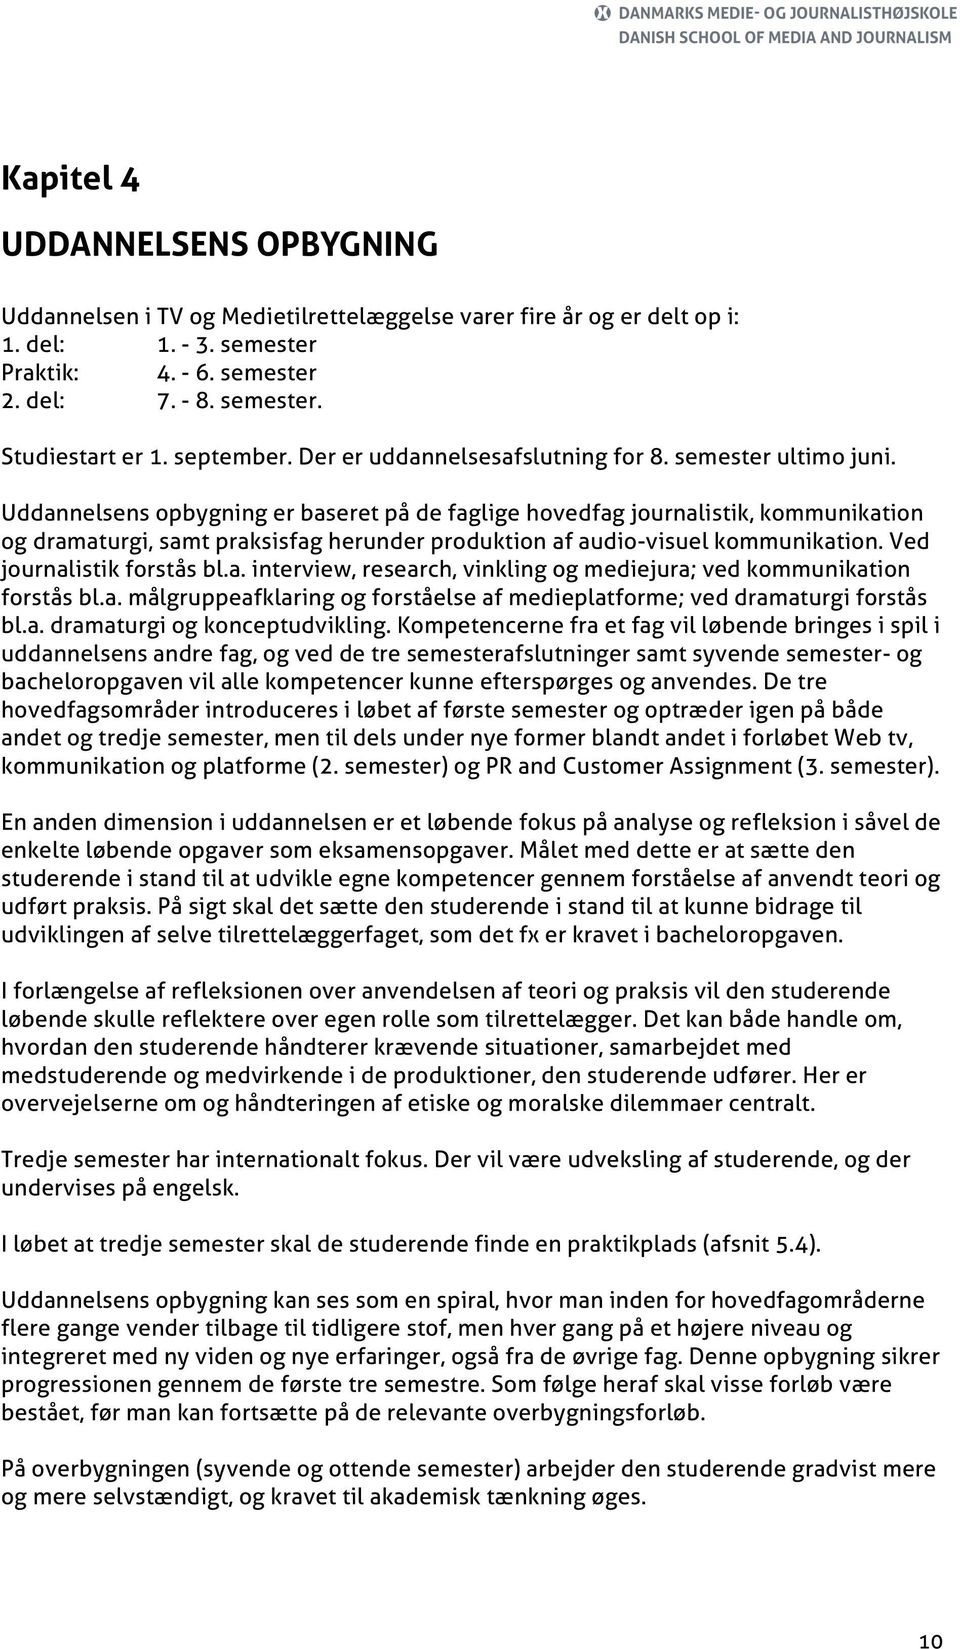 Uddannelsens opbygning er baseret på de faglige hovedfag journalistik, kommunikation og dramaturgi, samt praksisfag herunder produktion af audio-visuel kommunikation. Ved journalistik forstås bl.a. interview, research, vinkling og mediejura; ved kommunikation forstås bl.